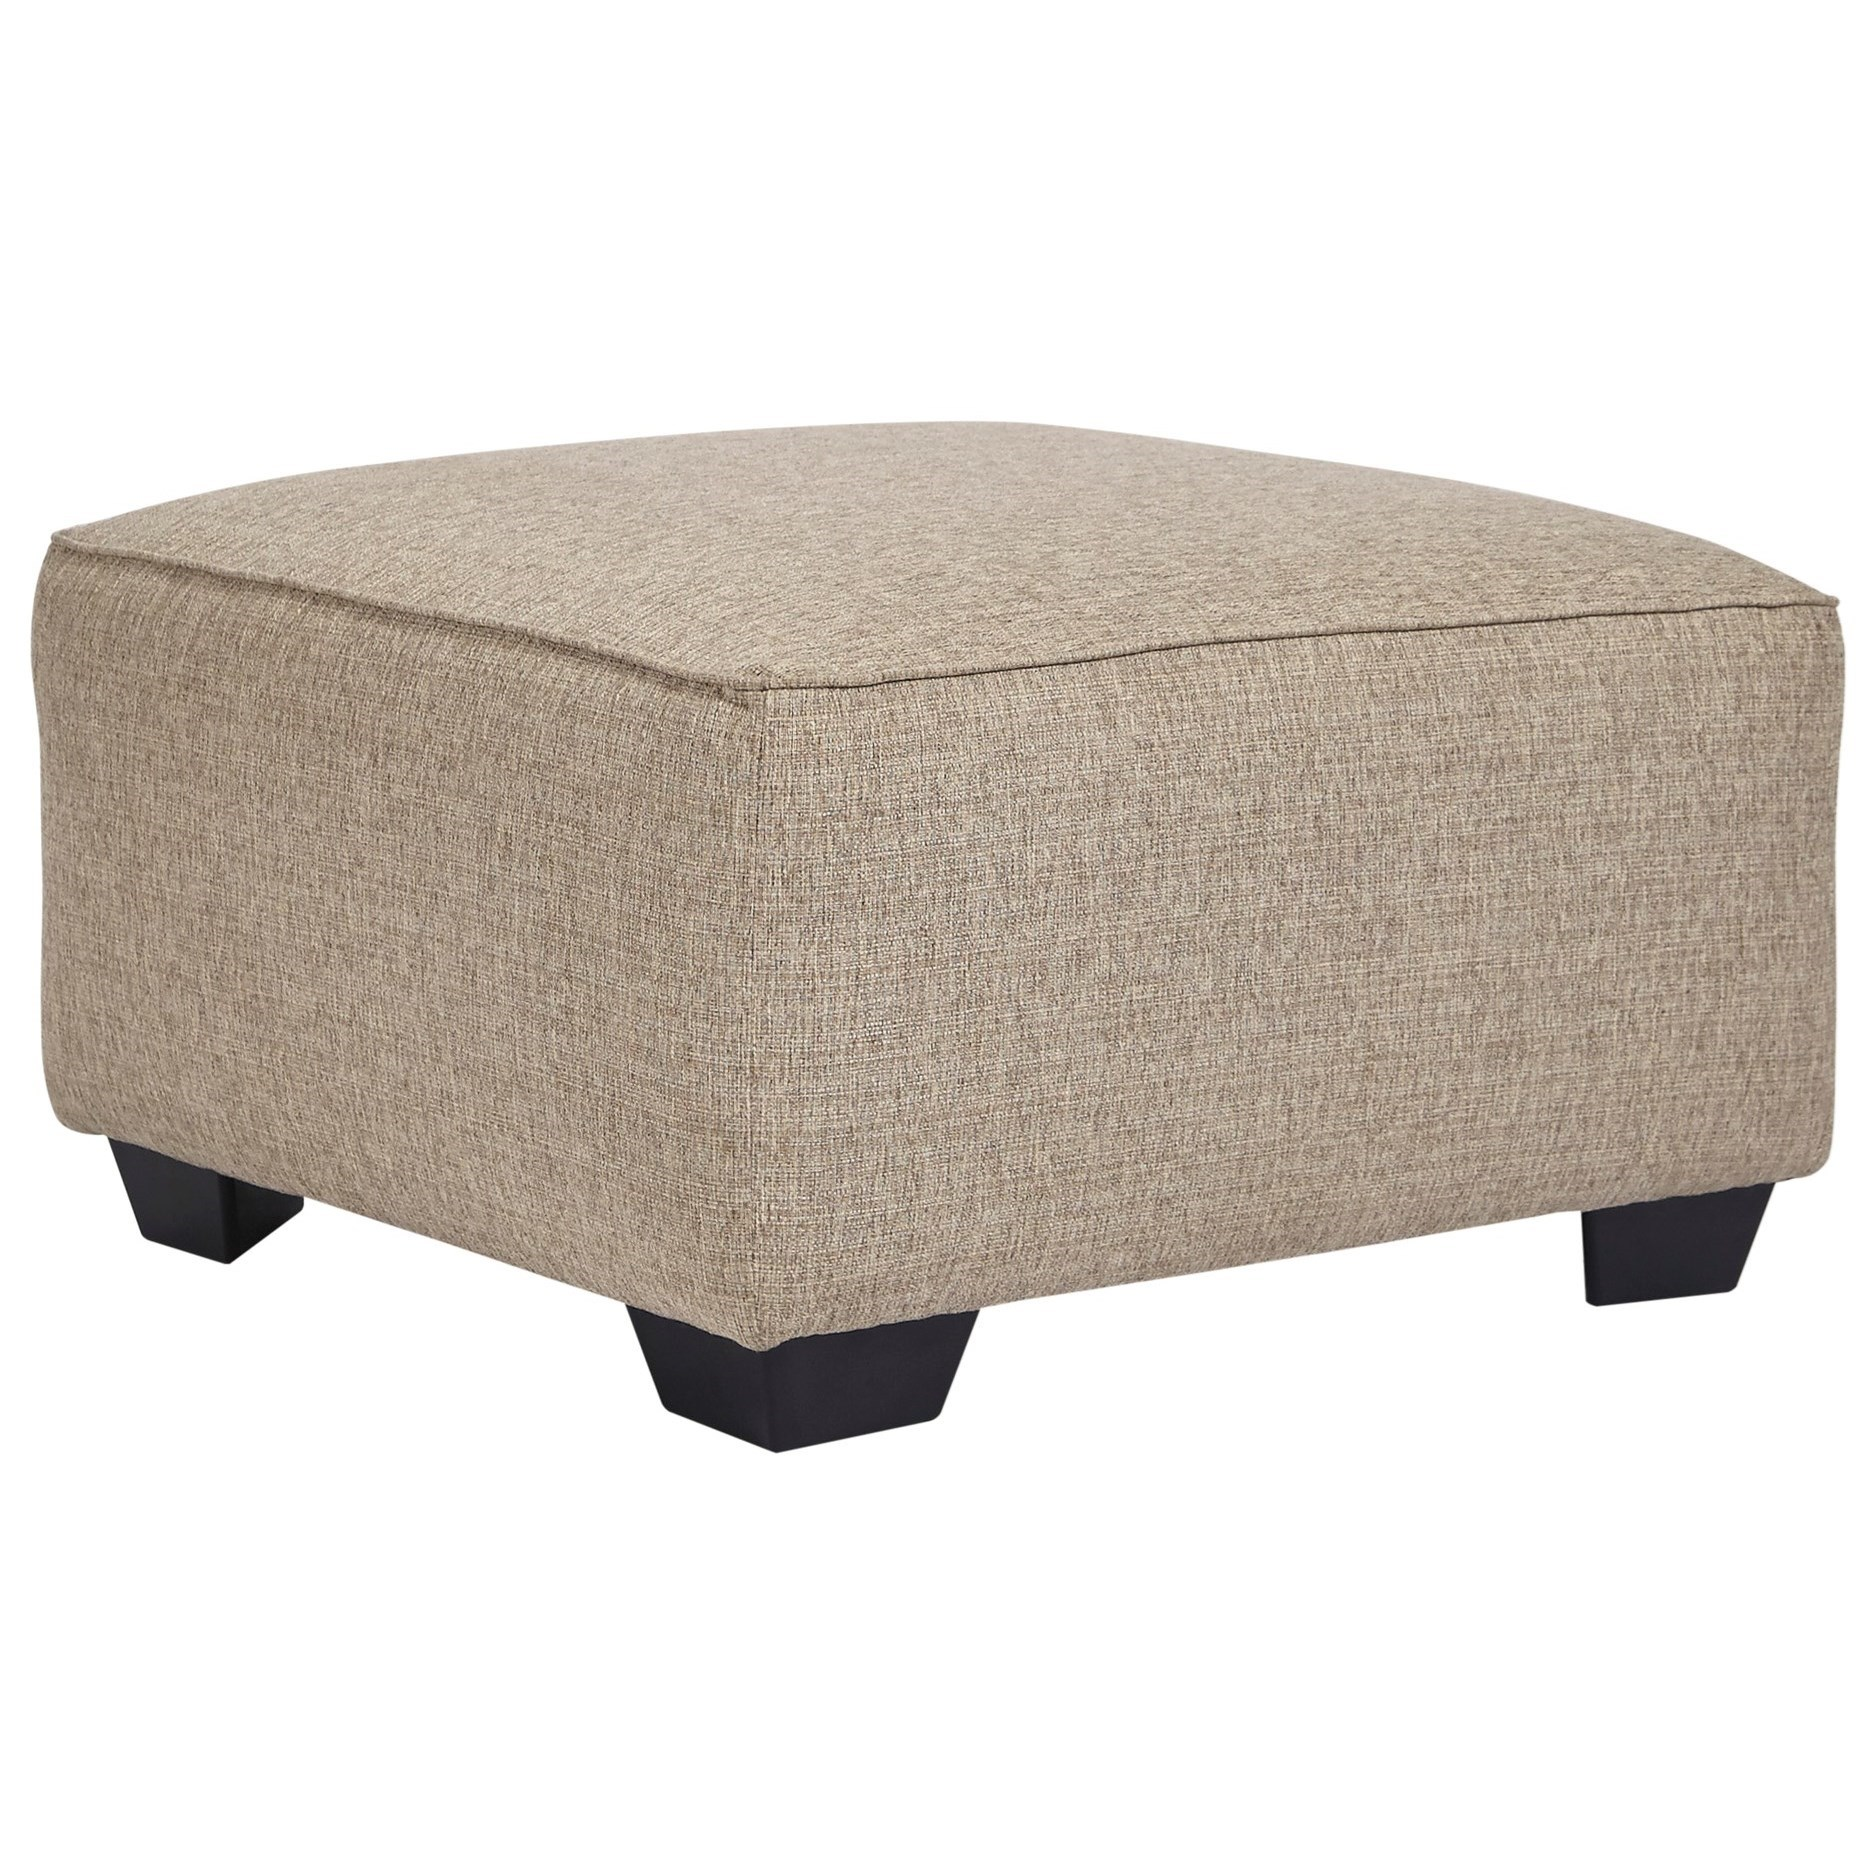 Baceno Oversized Accent Ottoman at Walker's Furniture